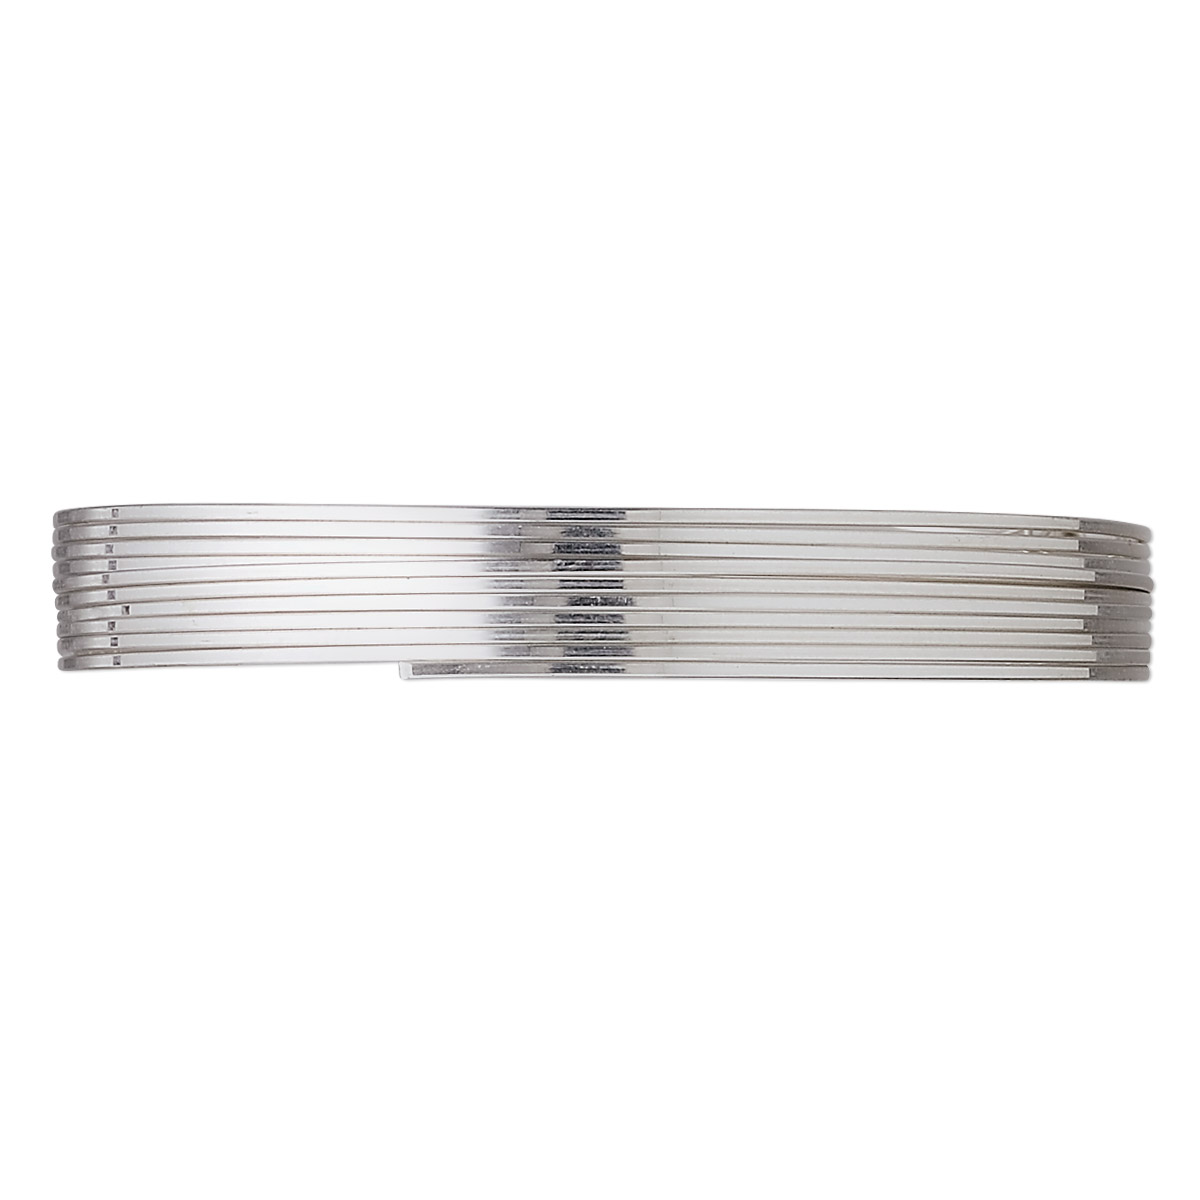 Wire, stainless steel, soft, square, 22 gauge. Sold per pkg of 6.5 ...